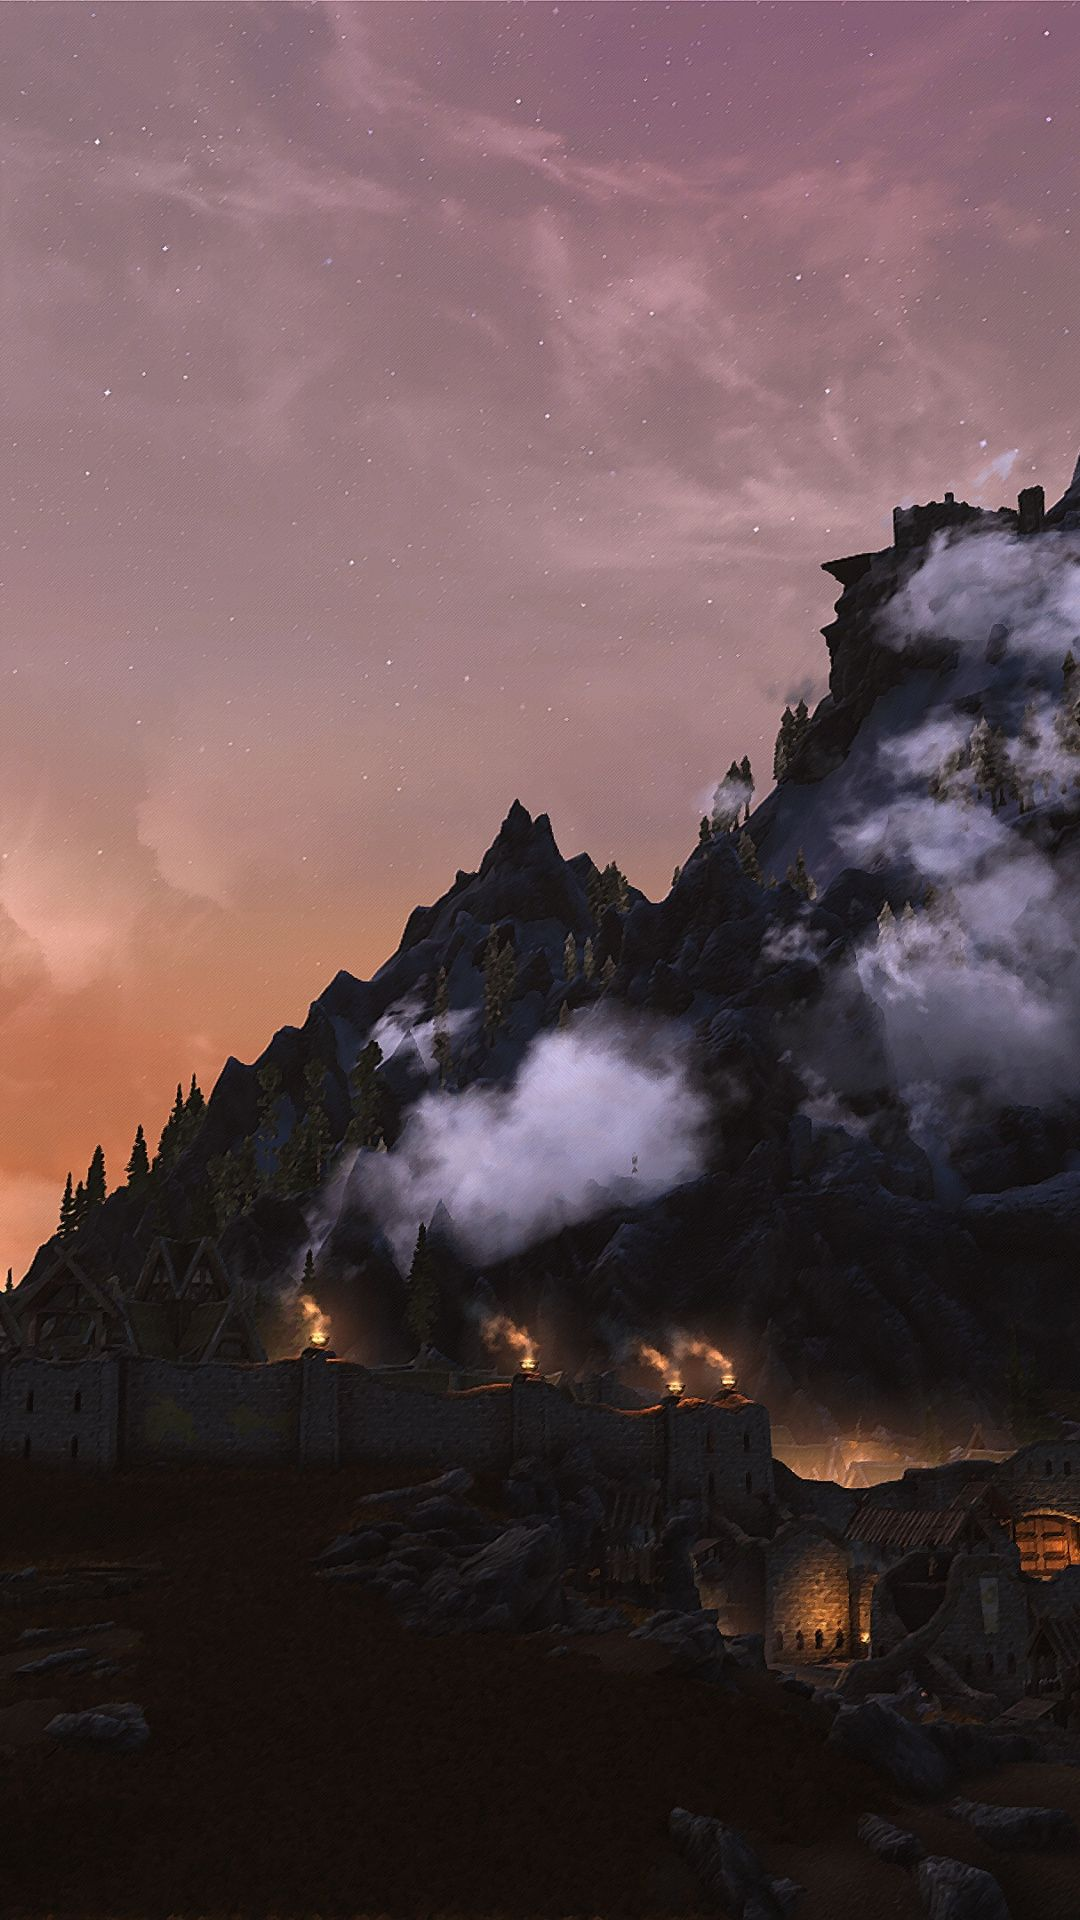 Mountains, The Elder Scrolls V Skyrim wallpaper (With